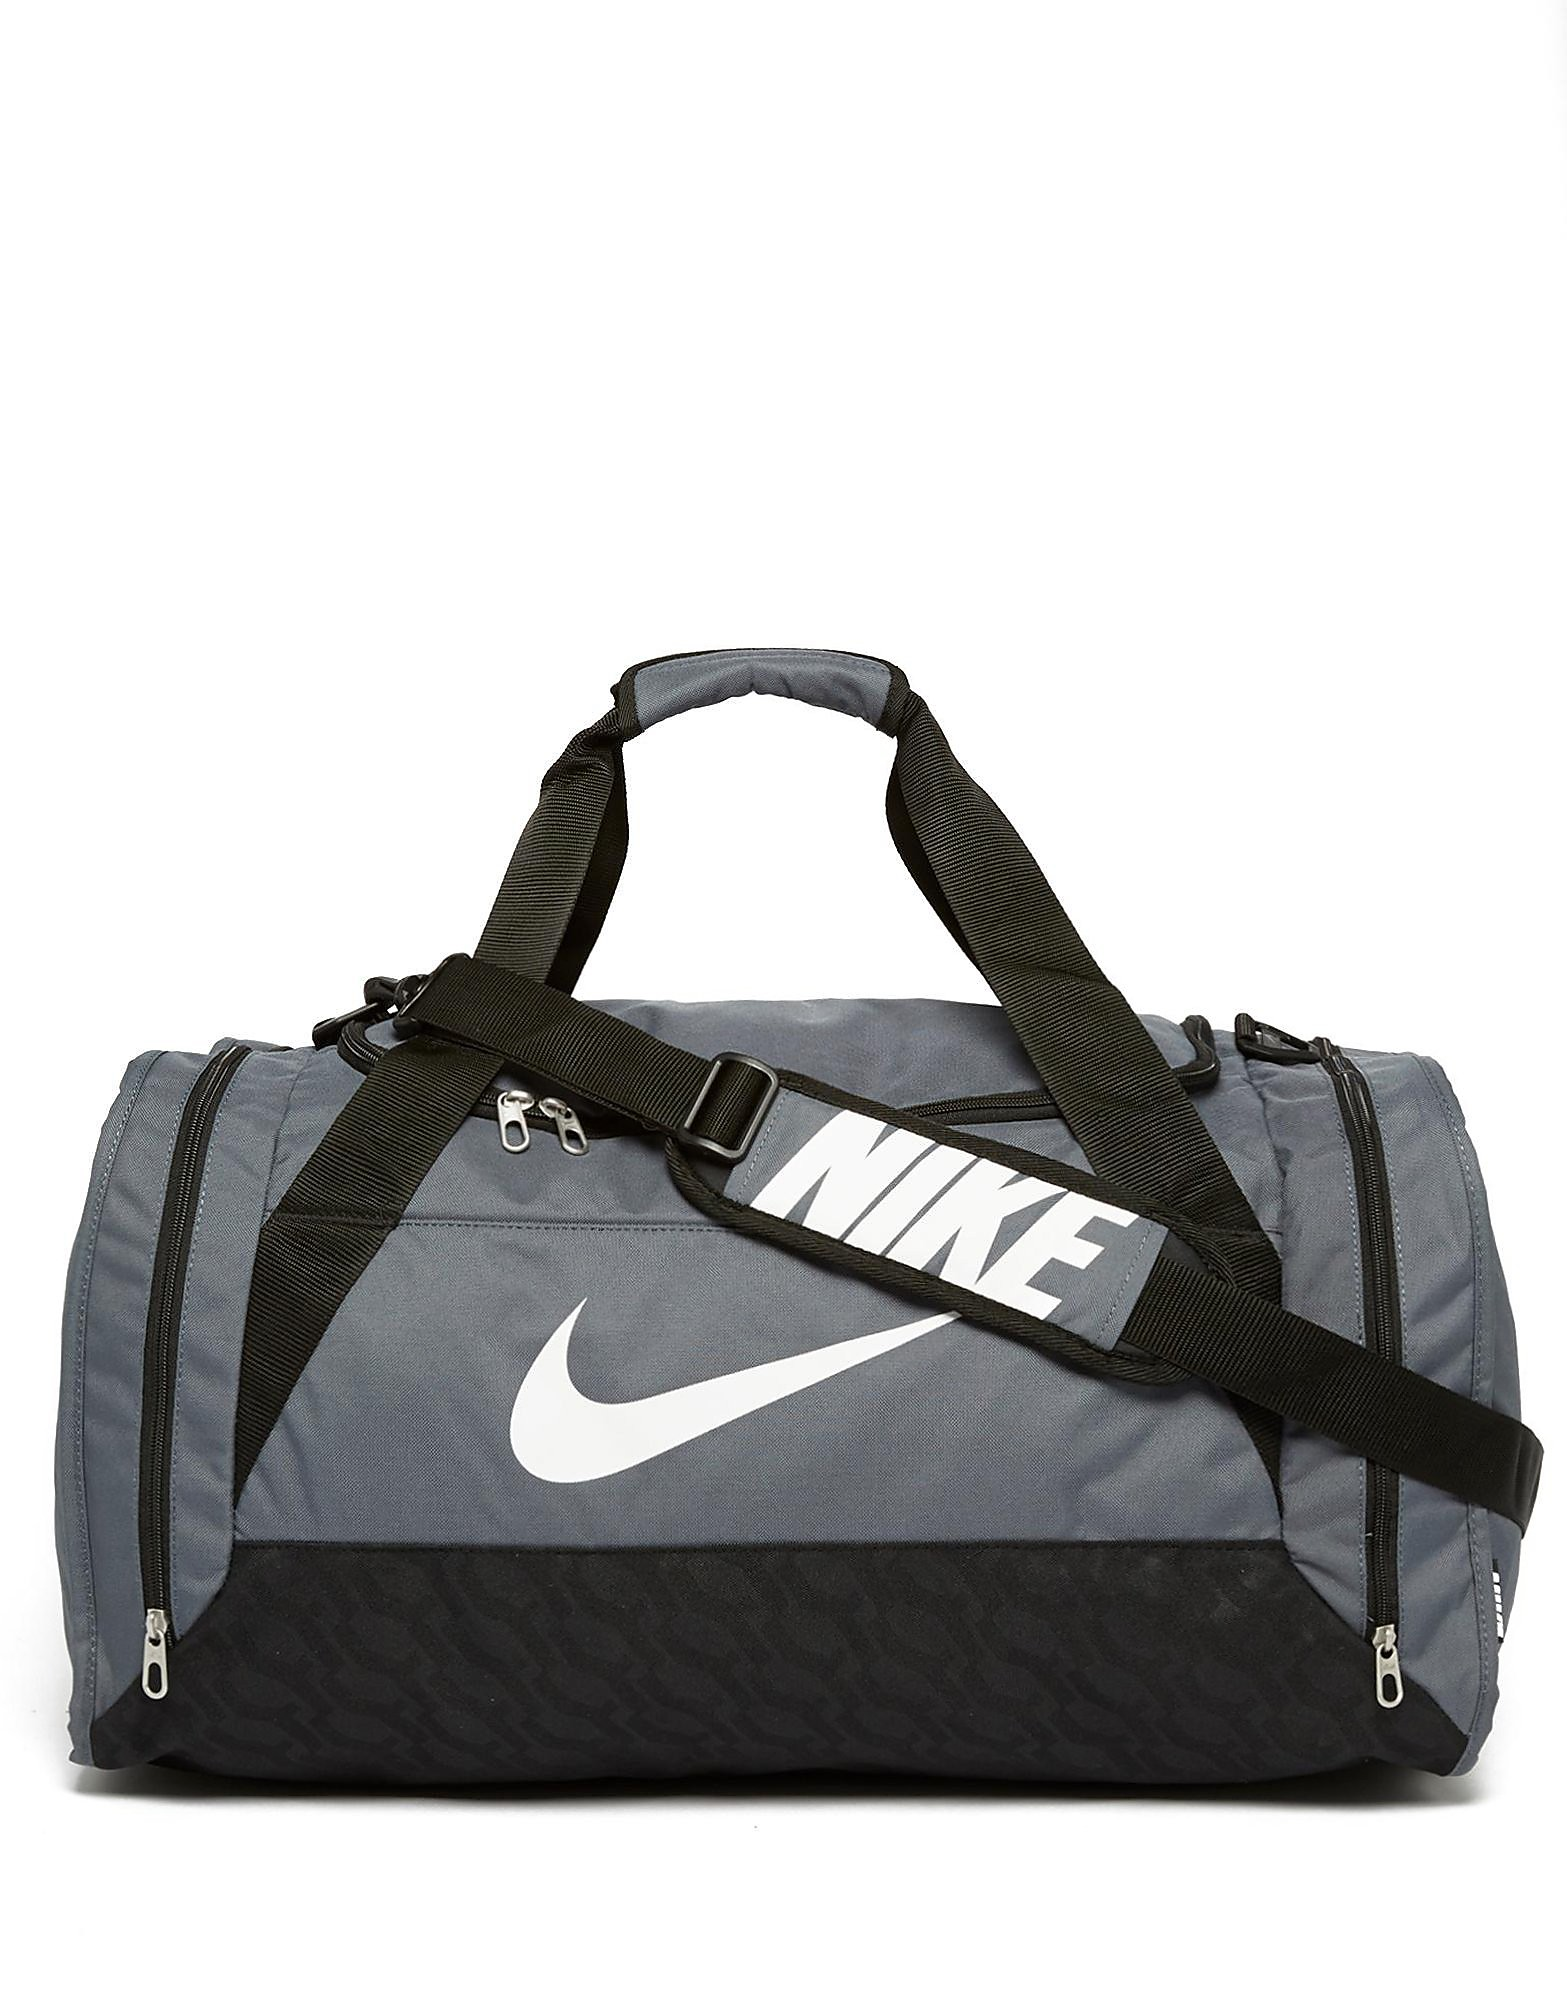 Nike Brasilia 6 Medium Duffel Bag